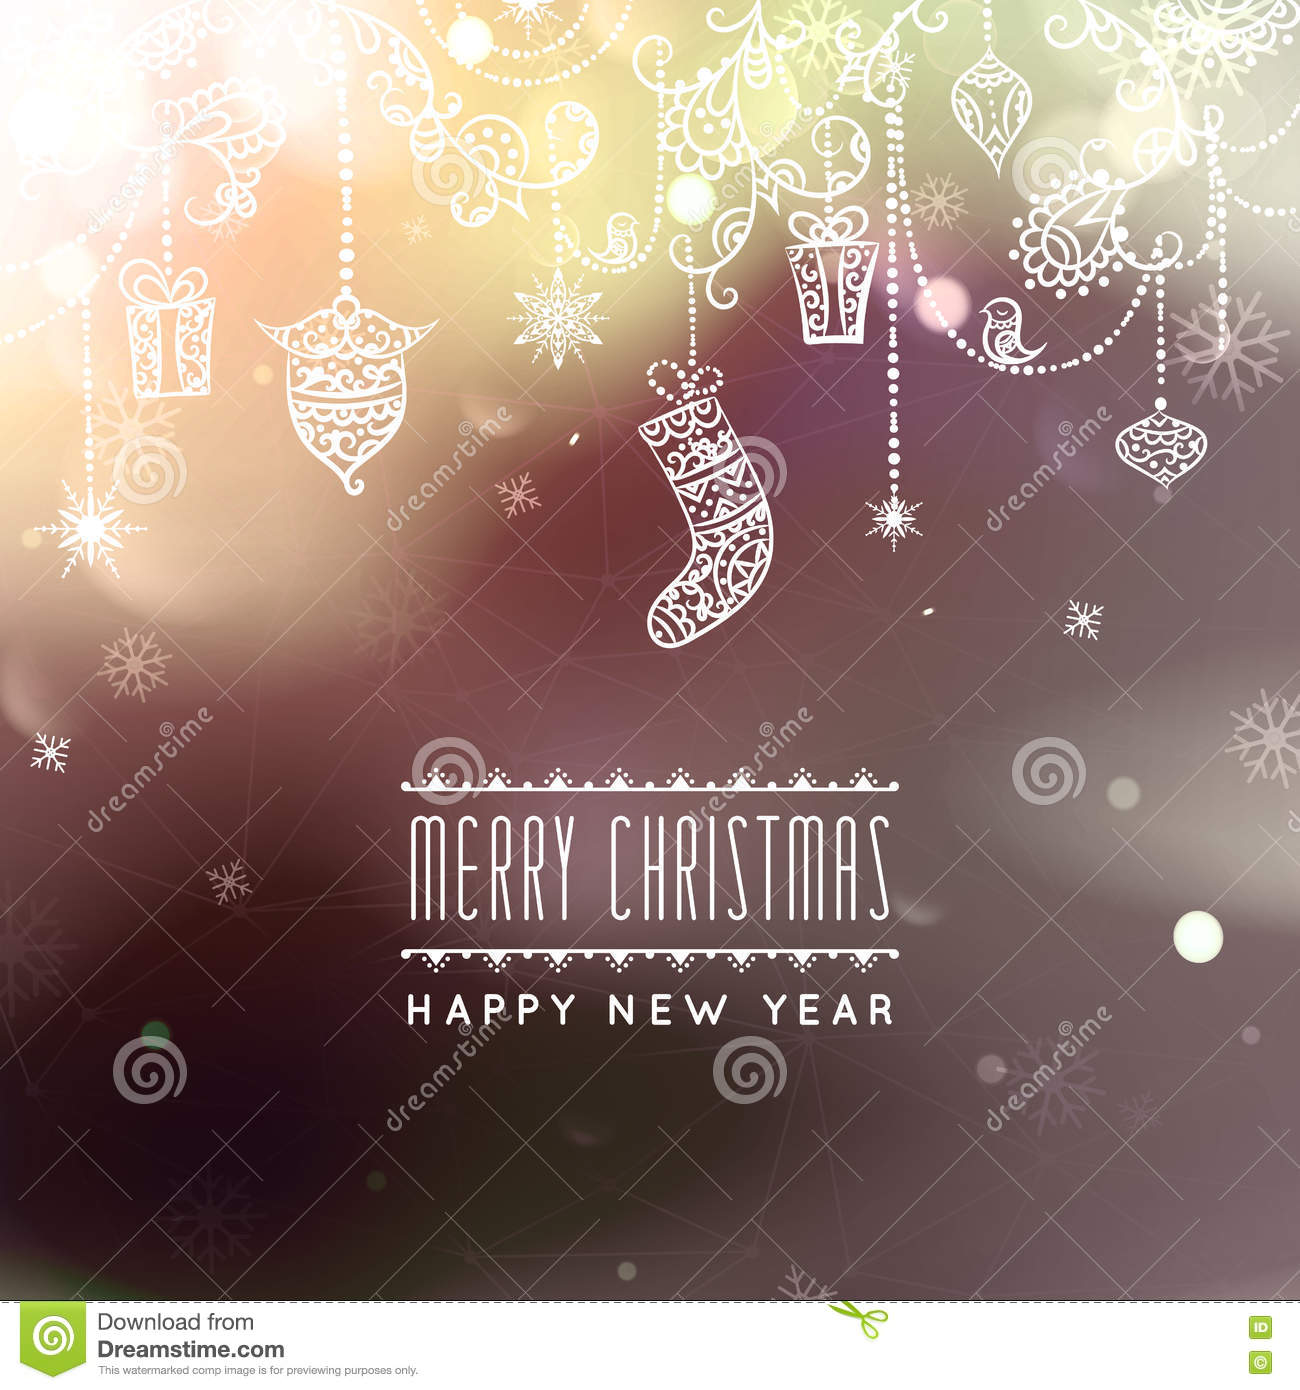 download merry christmas and happy new year card christmas typographic message vector bokeh background